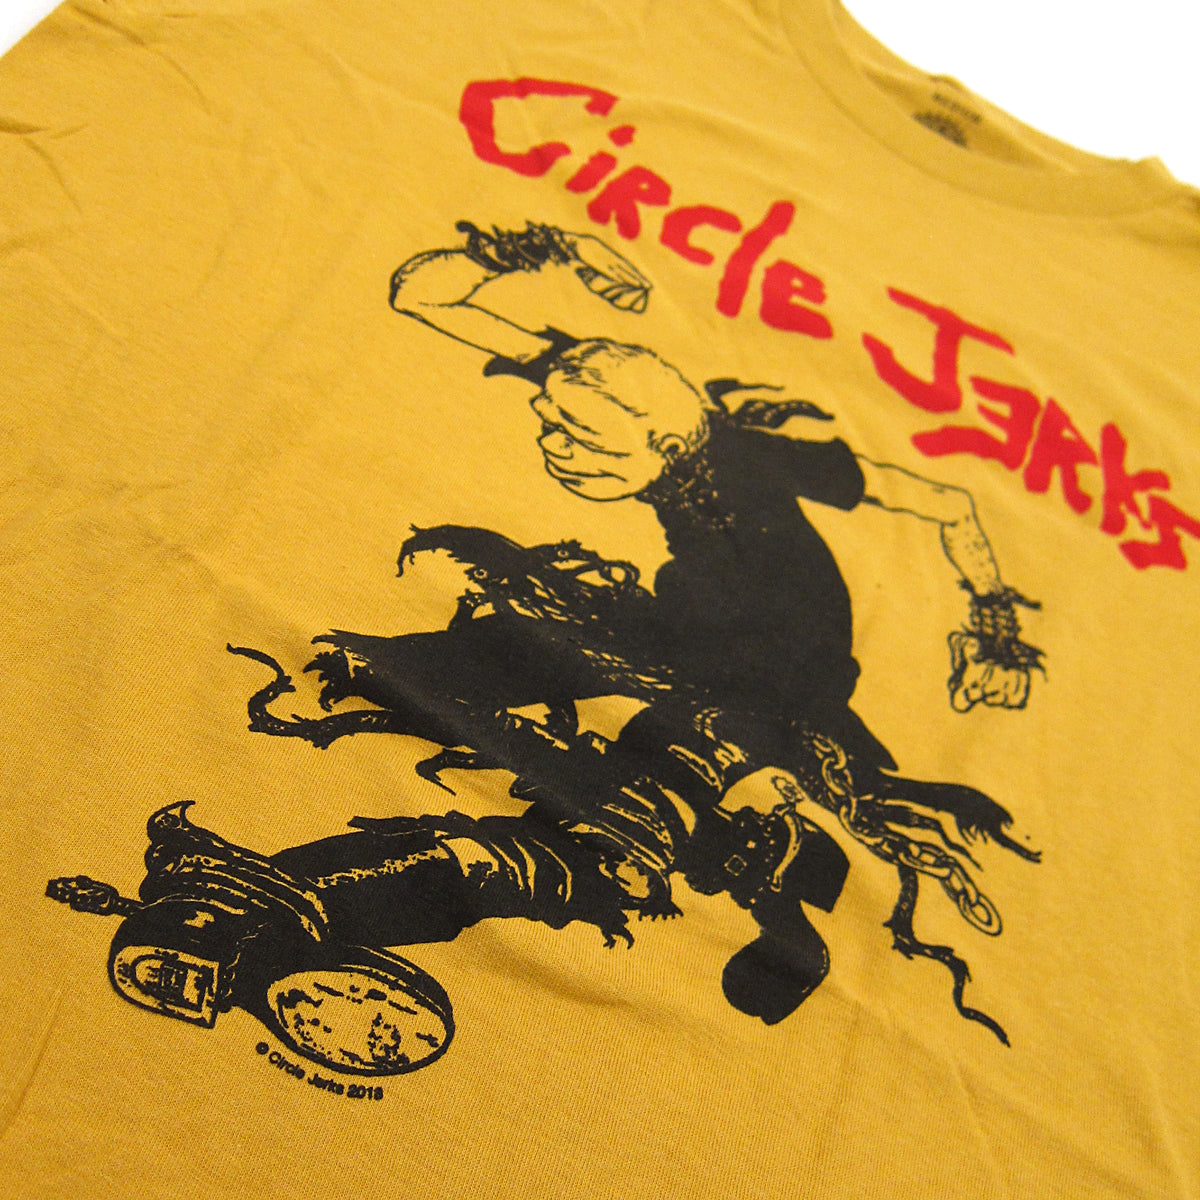 Circle Jerks: Skank Man Shirt - Ginger